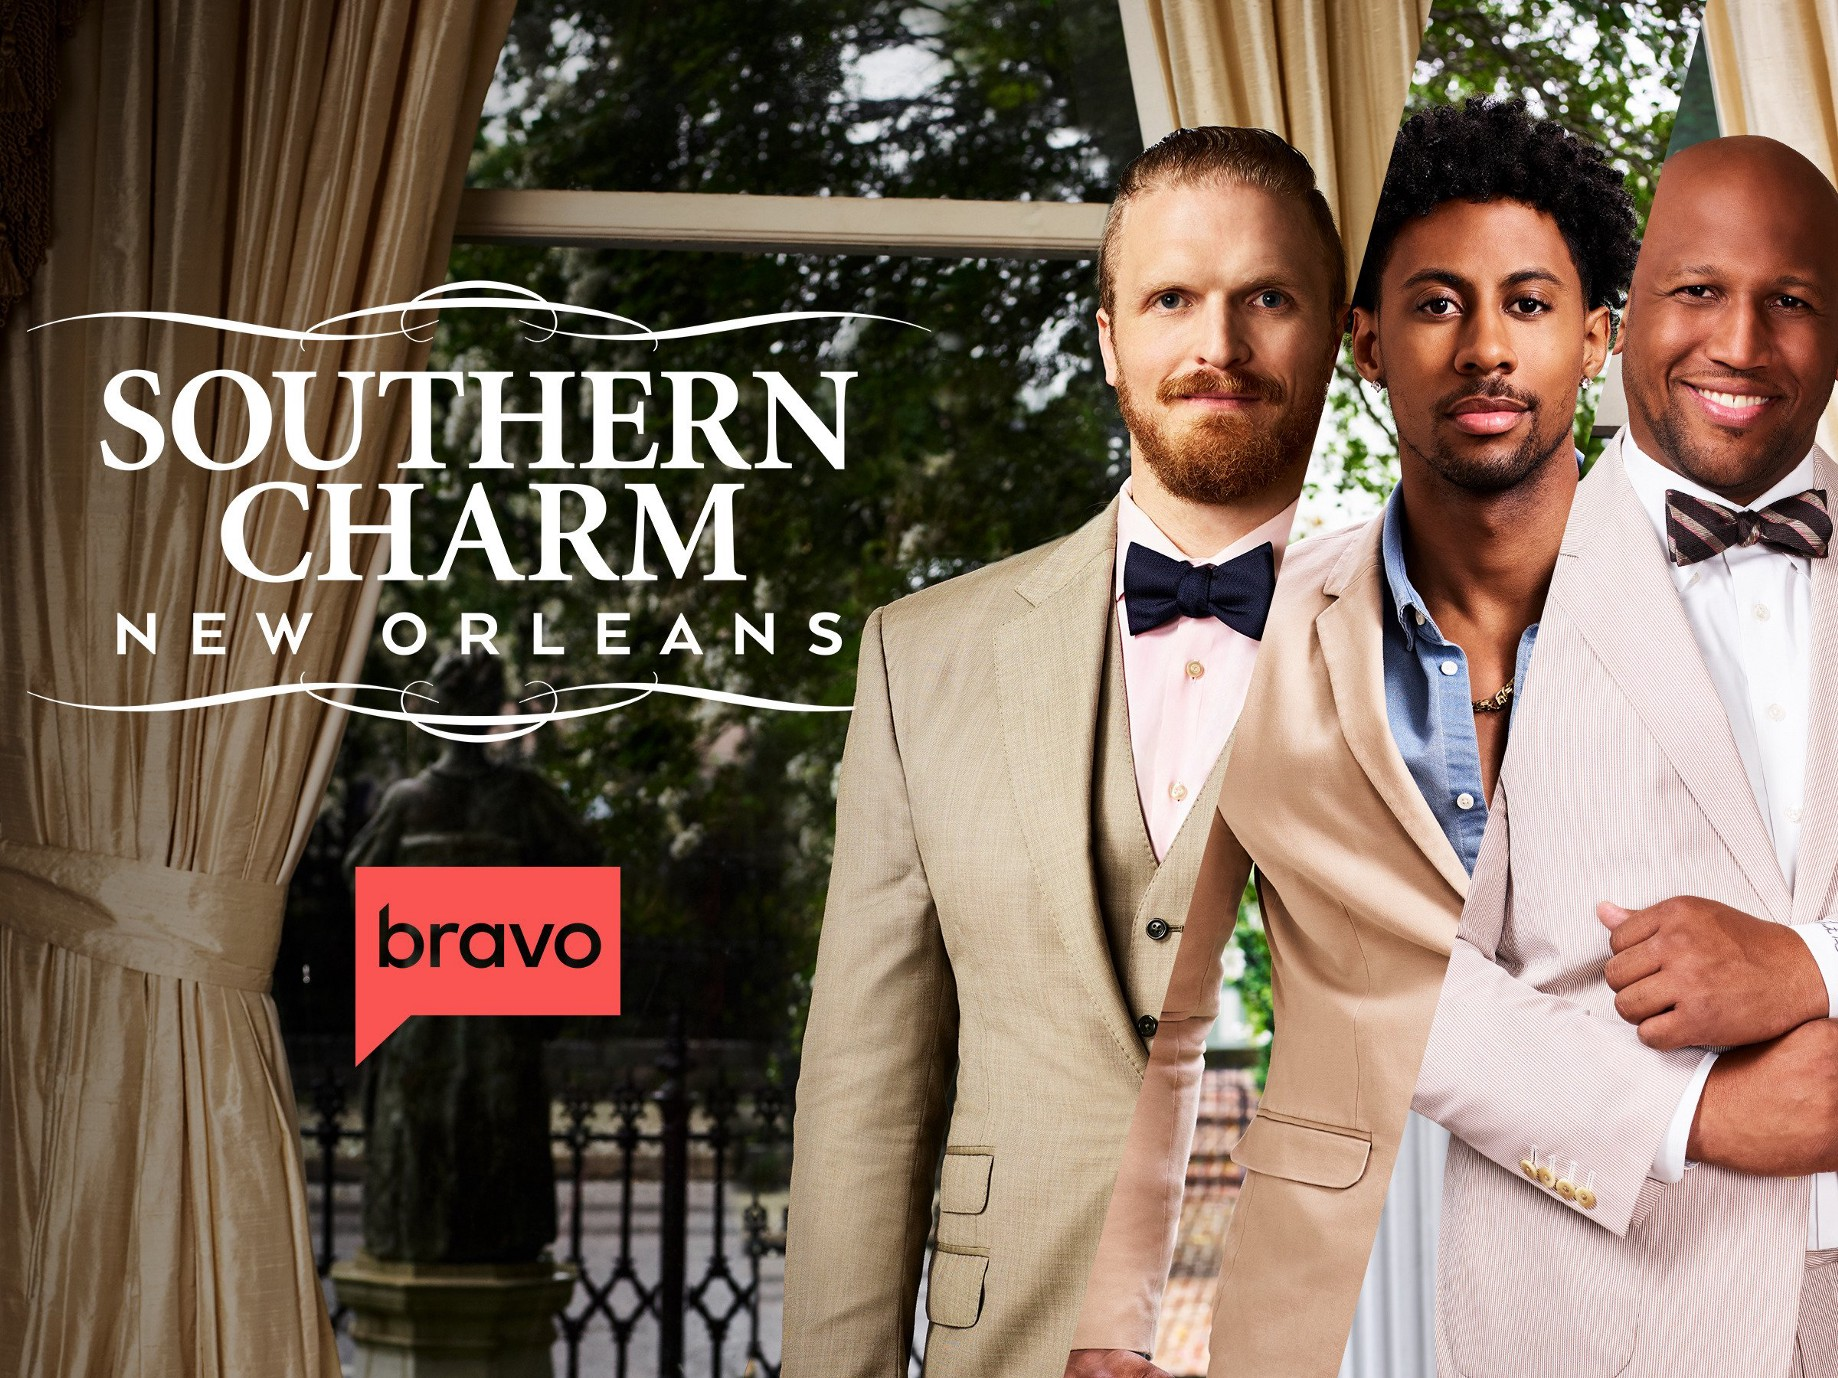 123Movies!! Southern Charm: New Orleans Season 2 Episode 7 (Bravo